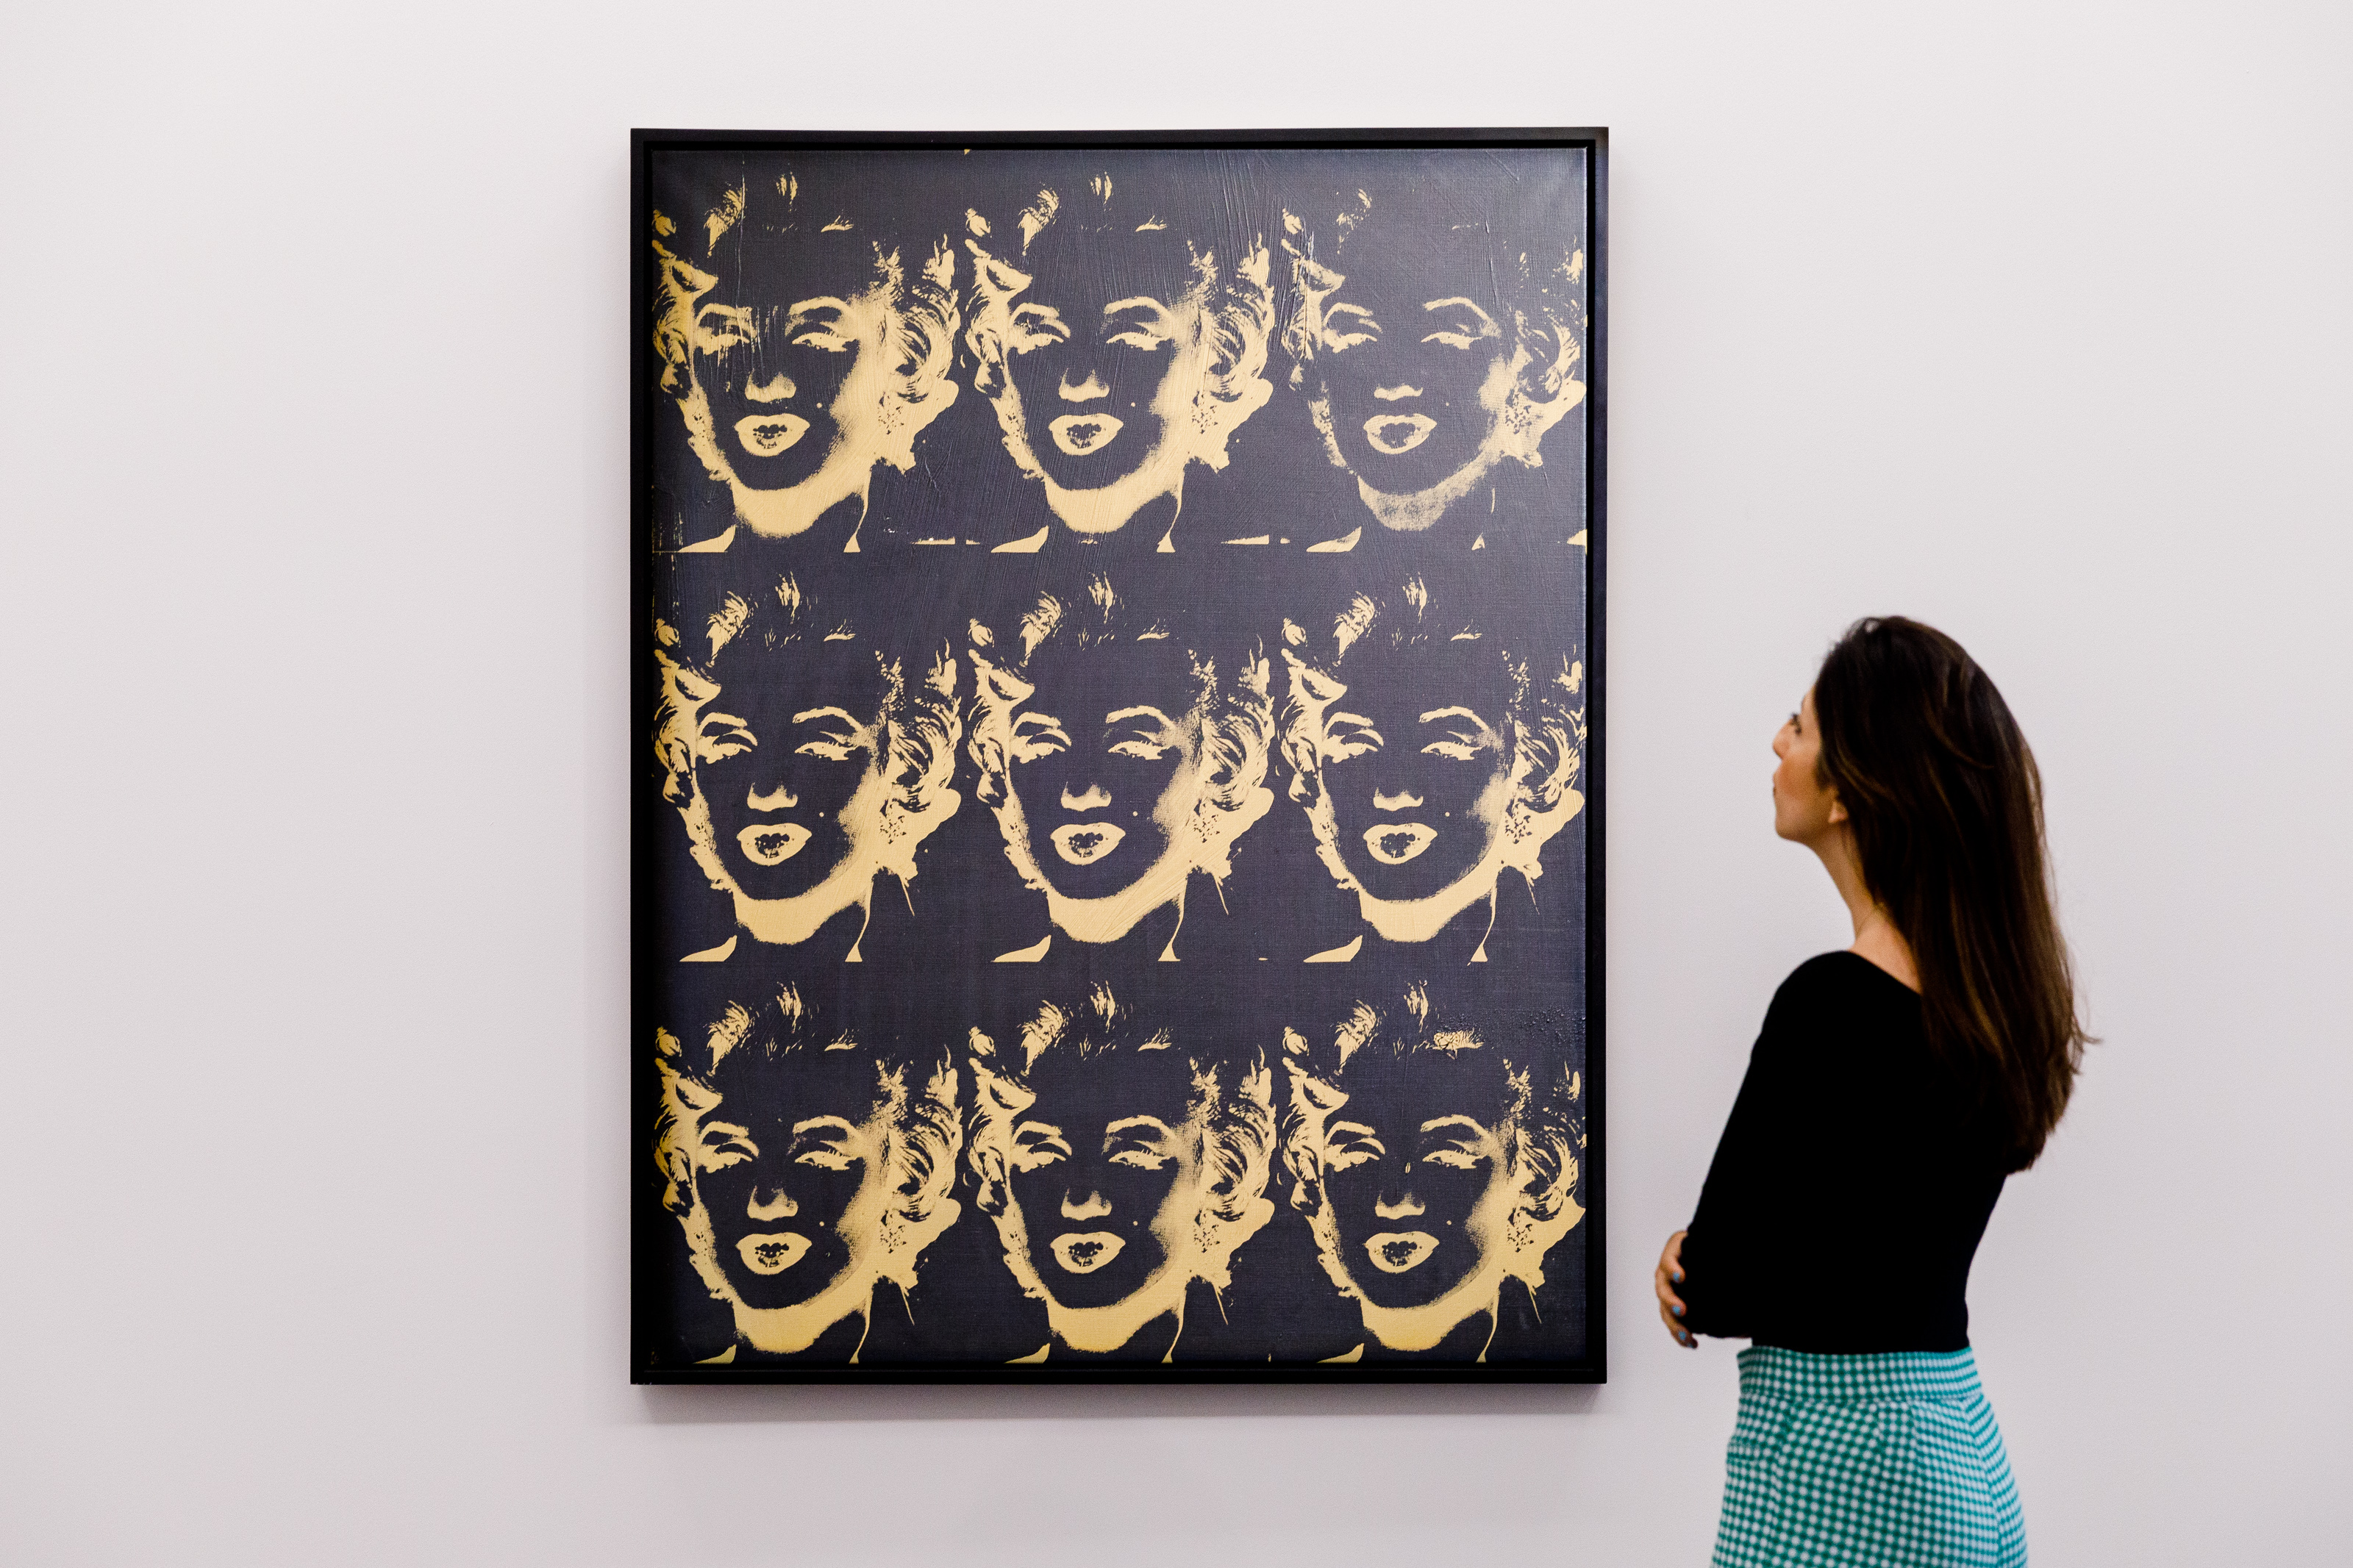 <p>LONDON, ENGLAND - JUNE 22:  Andy Warhol's '9 Gold Marilyns (Reversal Series)' (est. £5.5-8 million) goes on view at Sotheby's on June 22, 2021 in London, England. The work will be offered in the Modern &amp; Contemporary Art Evening Sale on 29th June at Sotheby's in London.(Photo by Tristan Fewings/Getty Images for Sotheby's)</p>